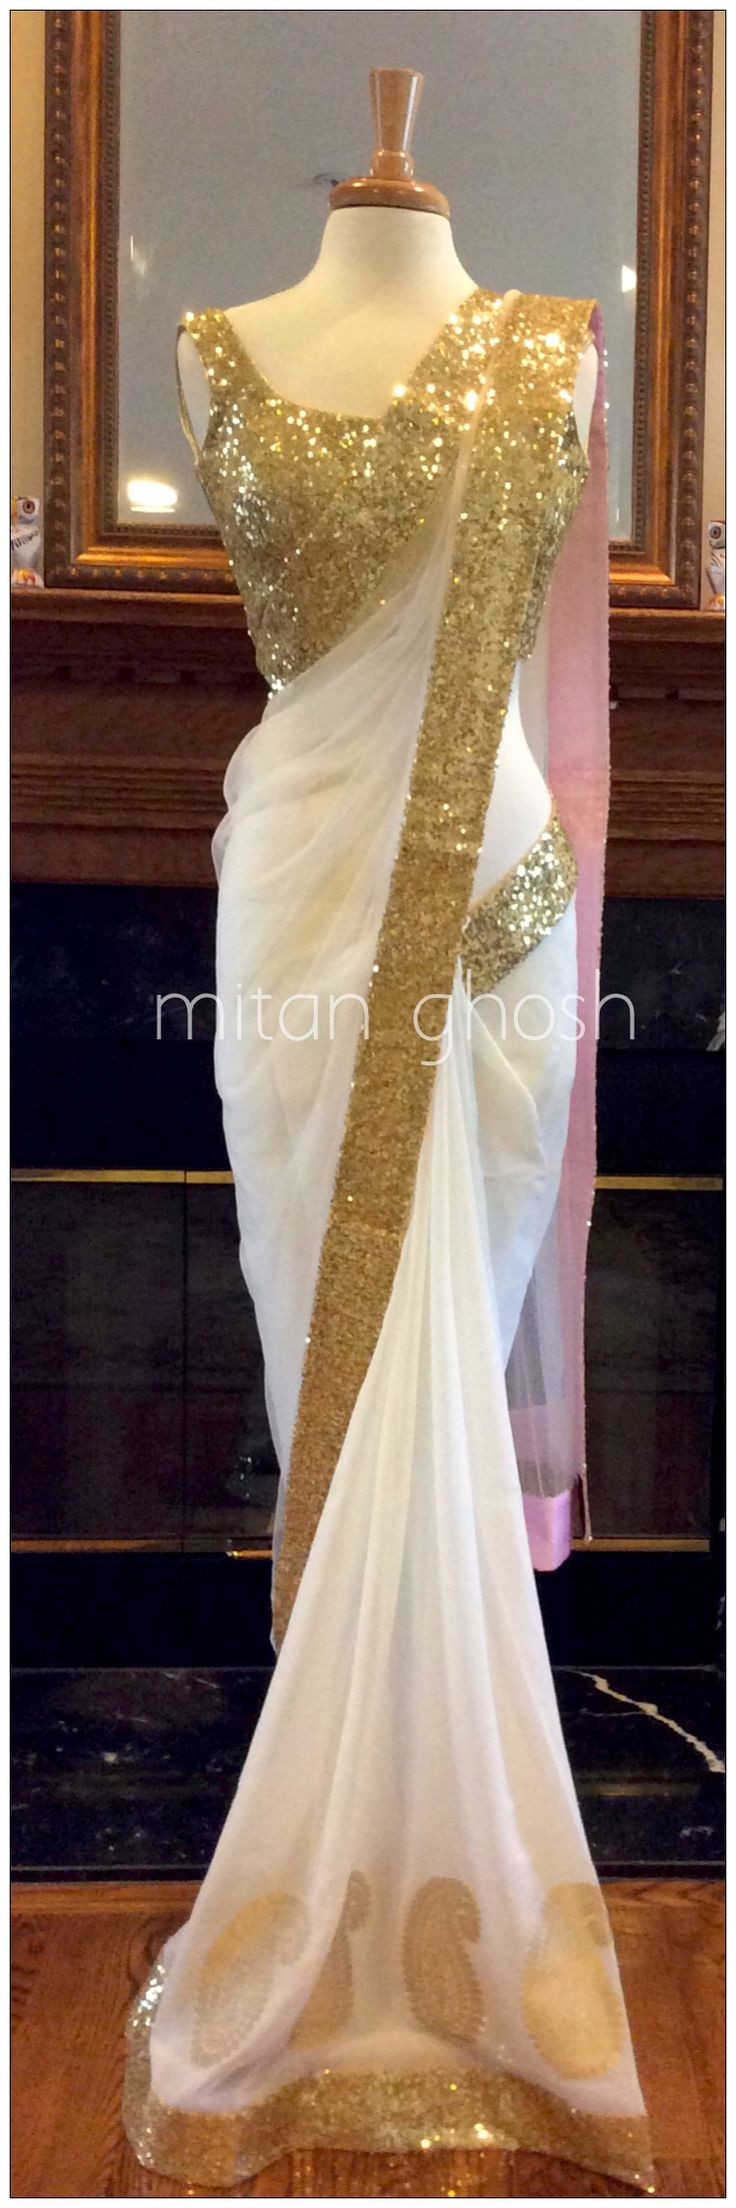 Bridesmaid saree- stunning i think more of a wedding saree!!